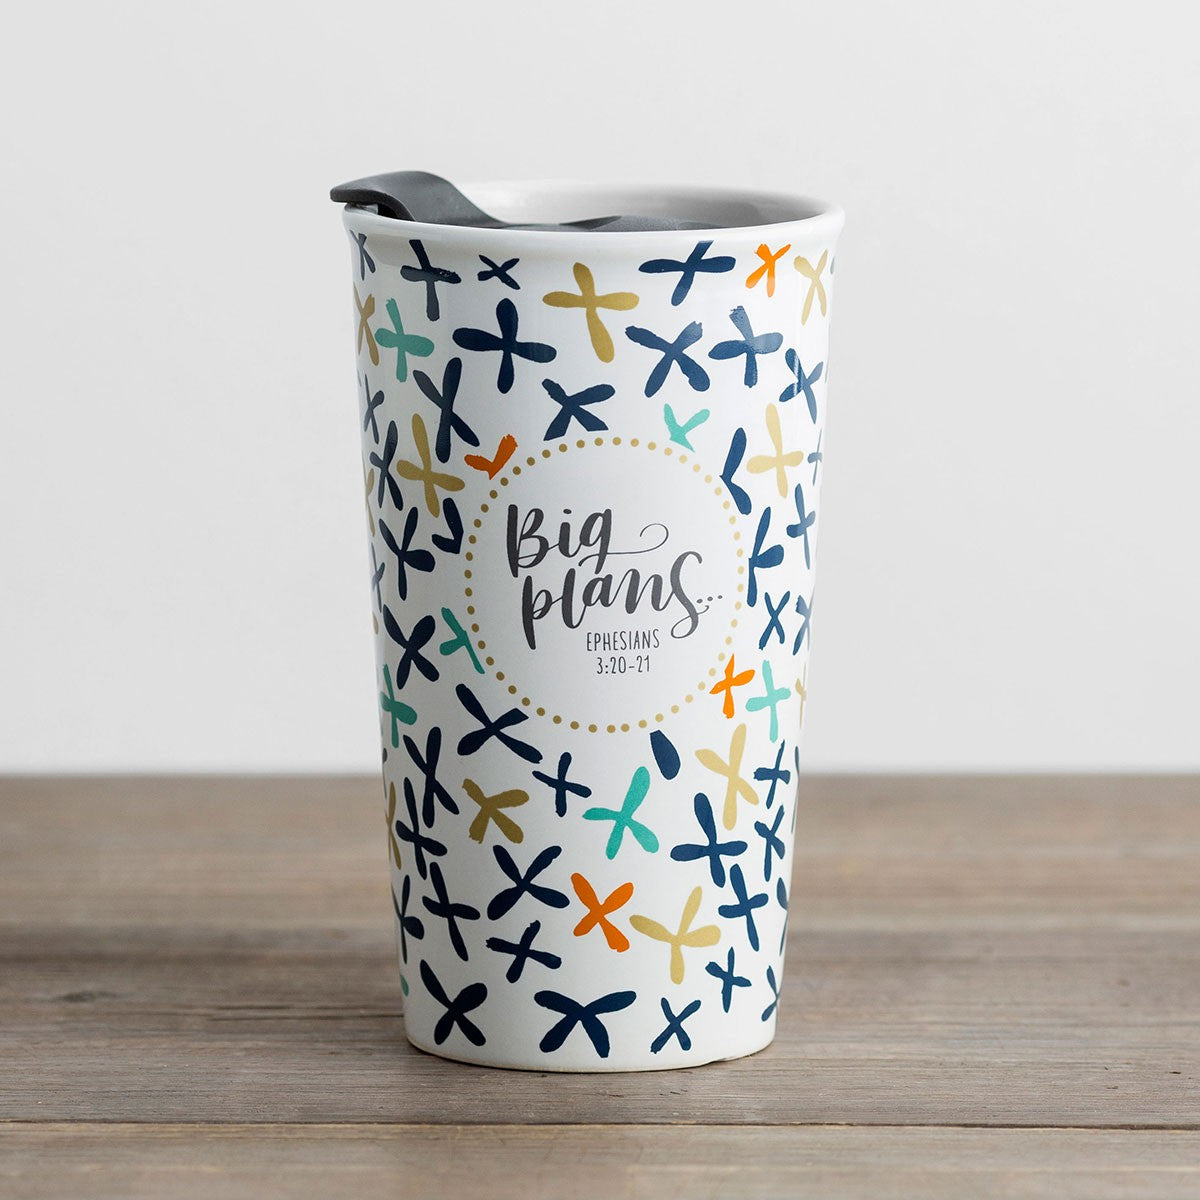 ROCKONLINE | New Creation Church | NCC | Joseph Prince | Ceramic Tumbler with Lid | Drinkware | Thermal Mug | Insulated | Christian Gifts | Small Gifts | Dayspring | Rock Bookshop | Rock Bookstore | Star Vista | Free Delivery for Singapore Orders above $50.